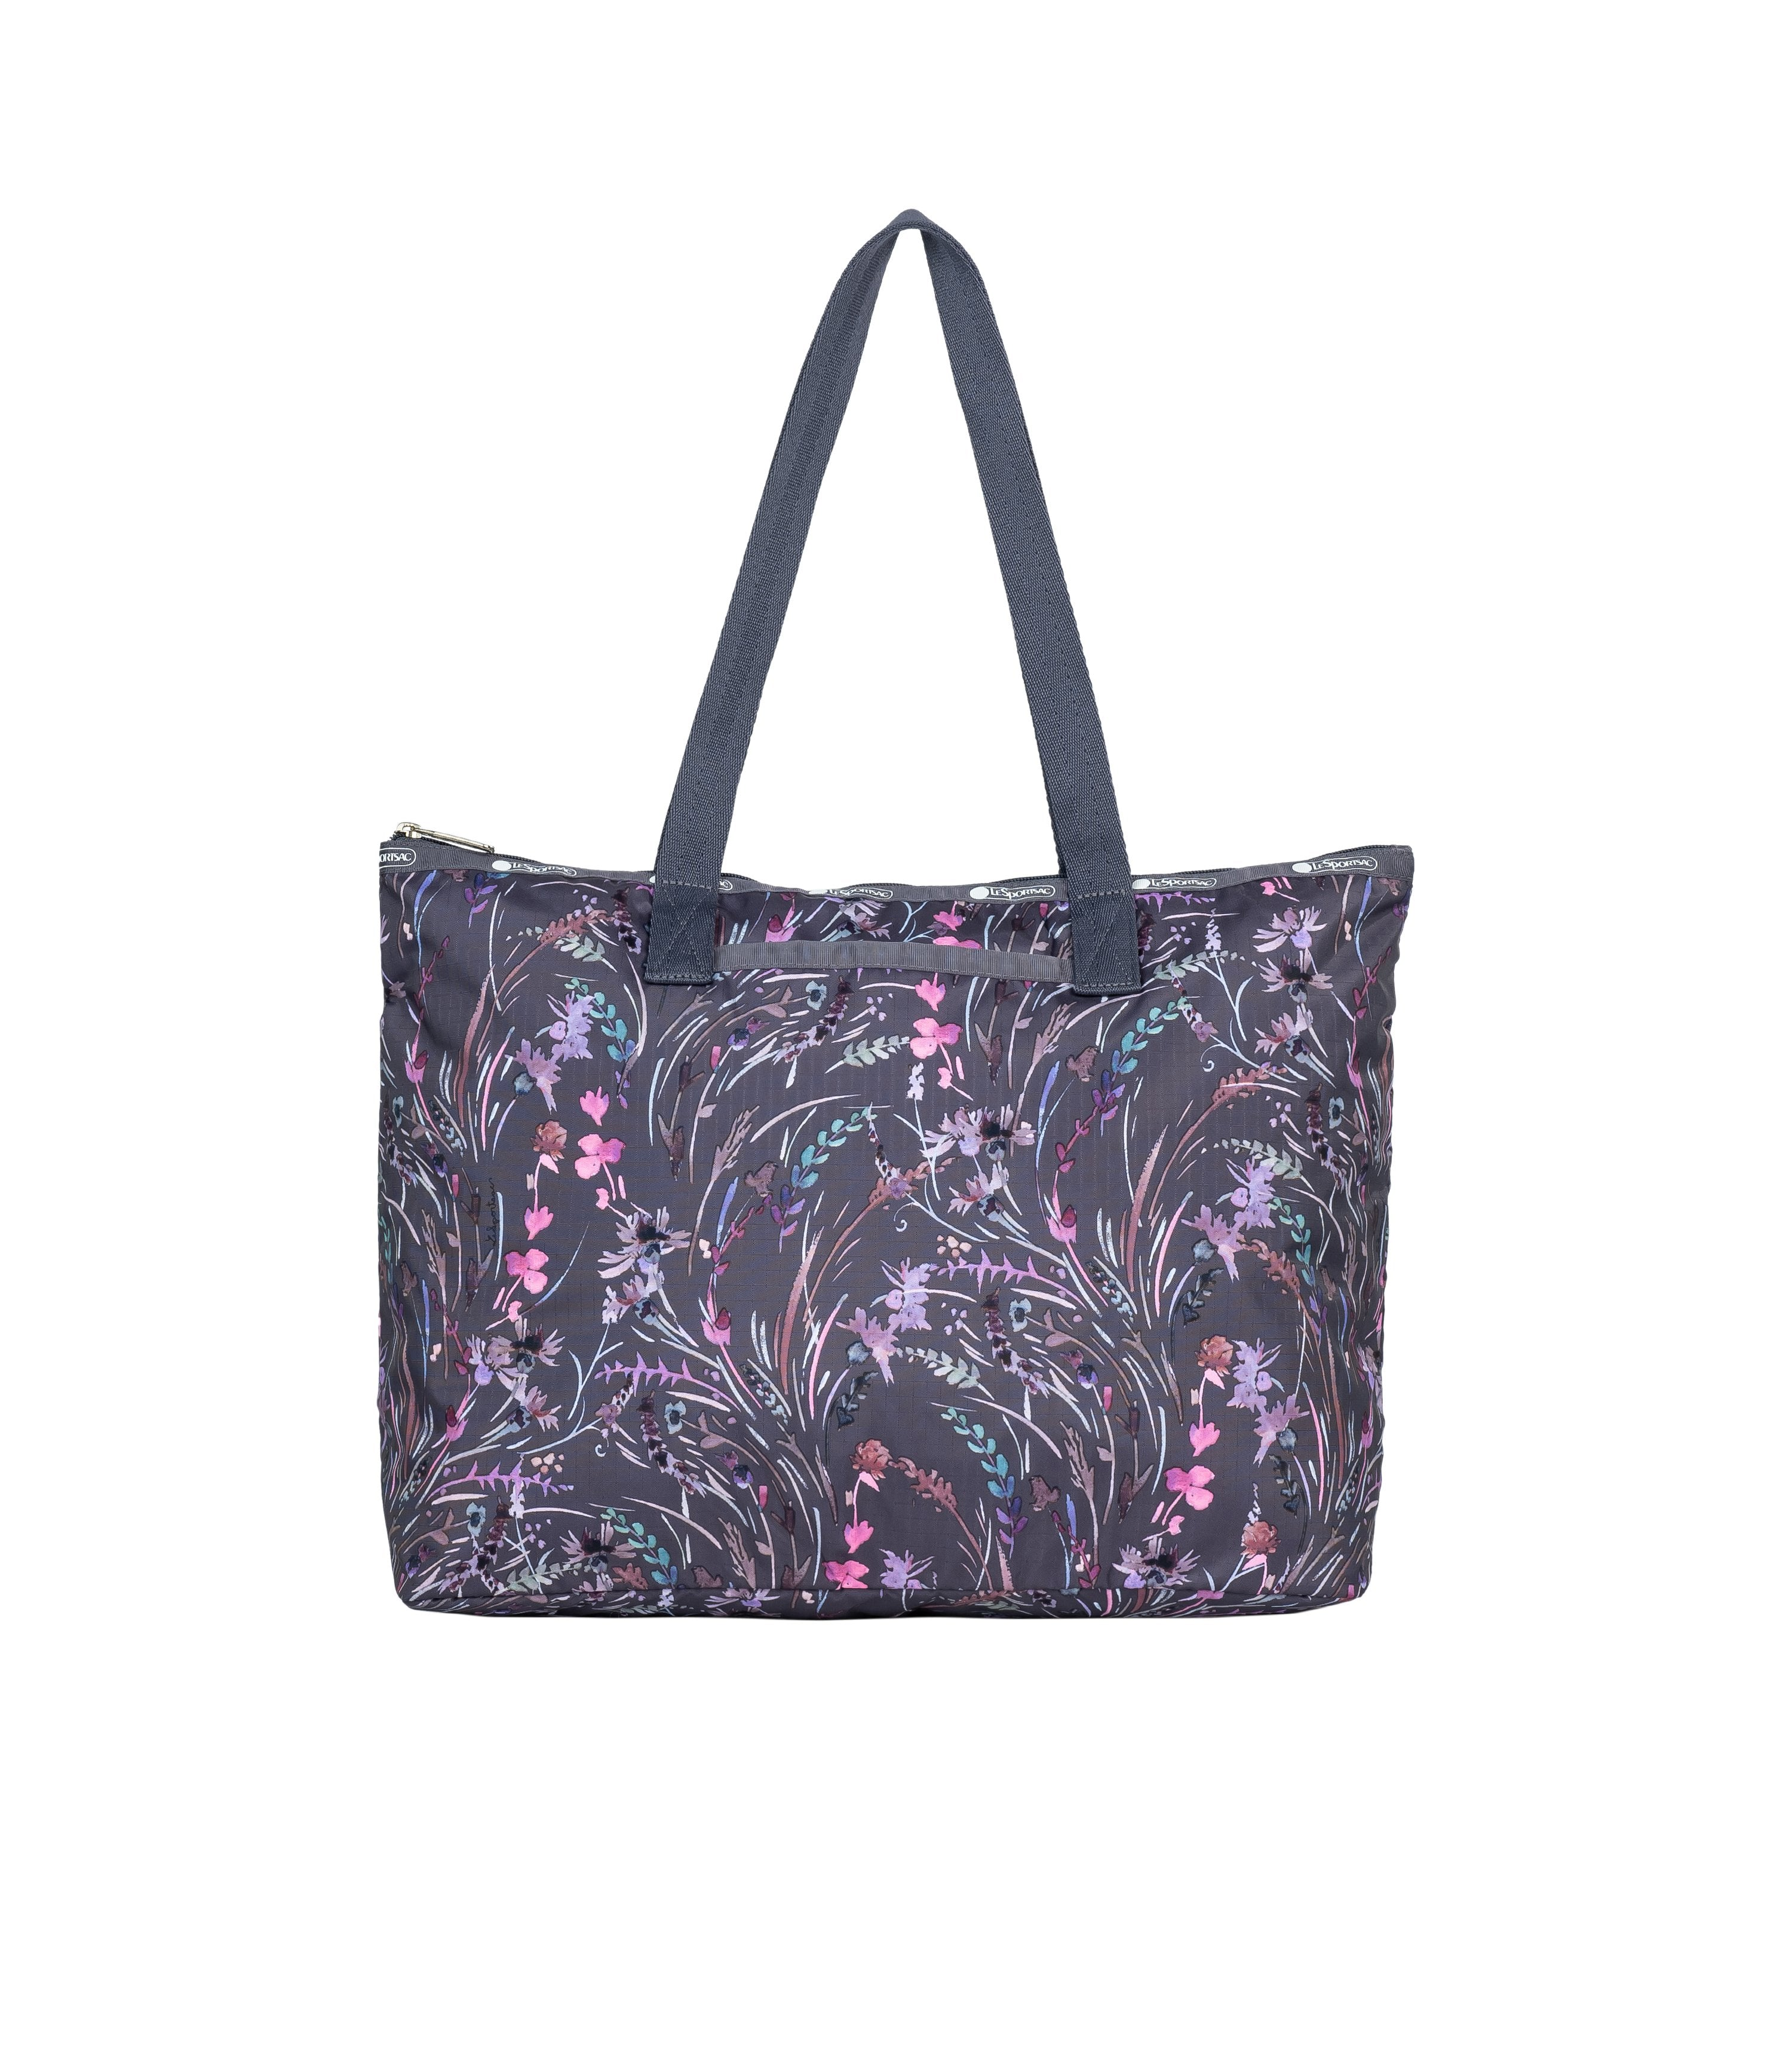 LeSportsac - Totes - Basic East/West Tote - Windswept Floral Shadow print